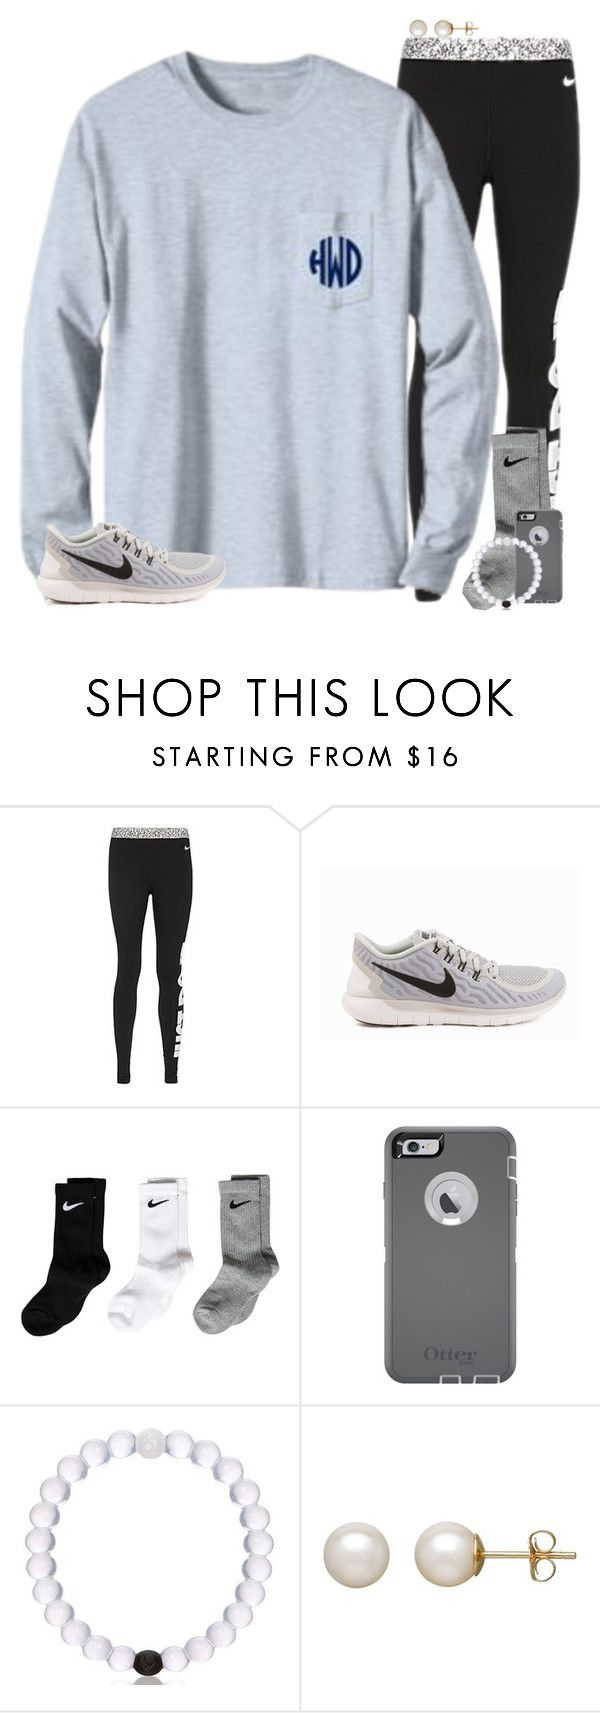 """Play practice tomorrow"" by katew4019 ❤ liked on Polyvore featuring moda, NIKE, OtterBox, Honora, women's clothing, women's fashion, women, female, woman i misses"